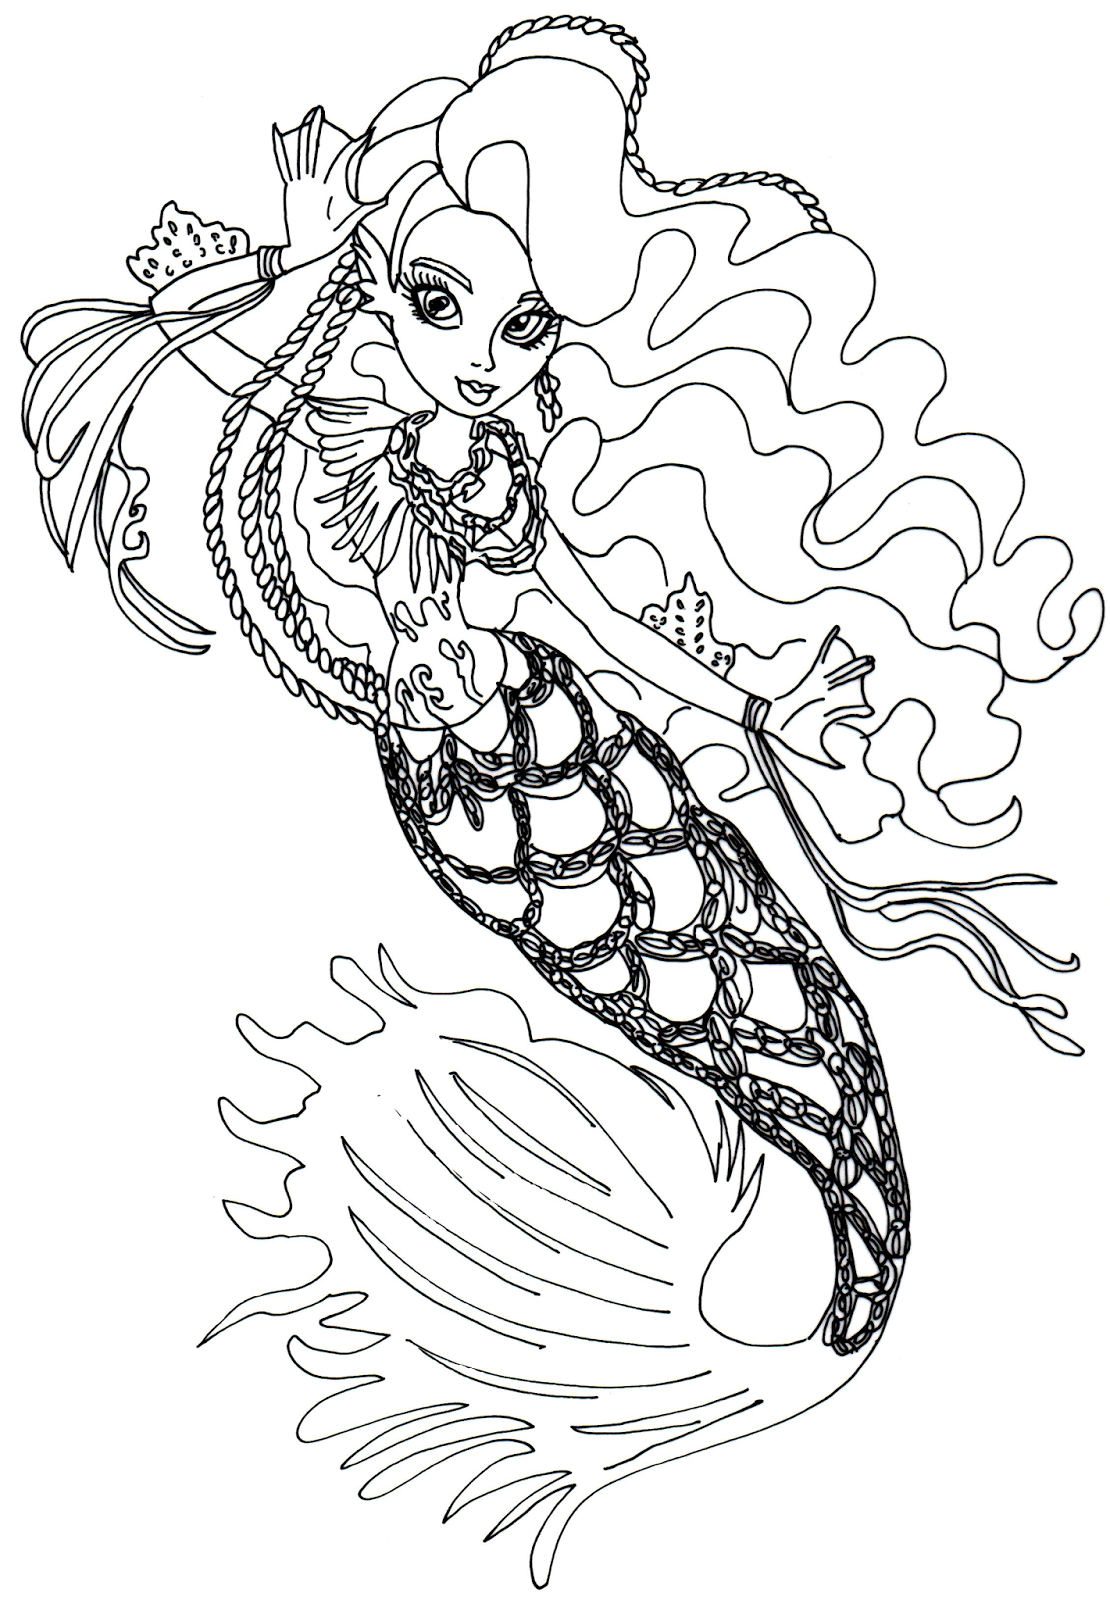 print monster high coloring pages - coloring pages of monster high imagui